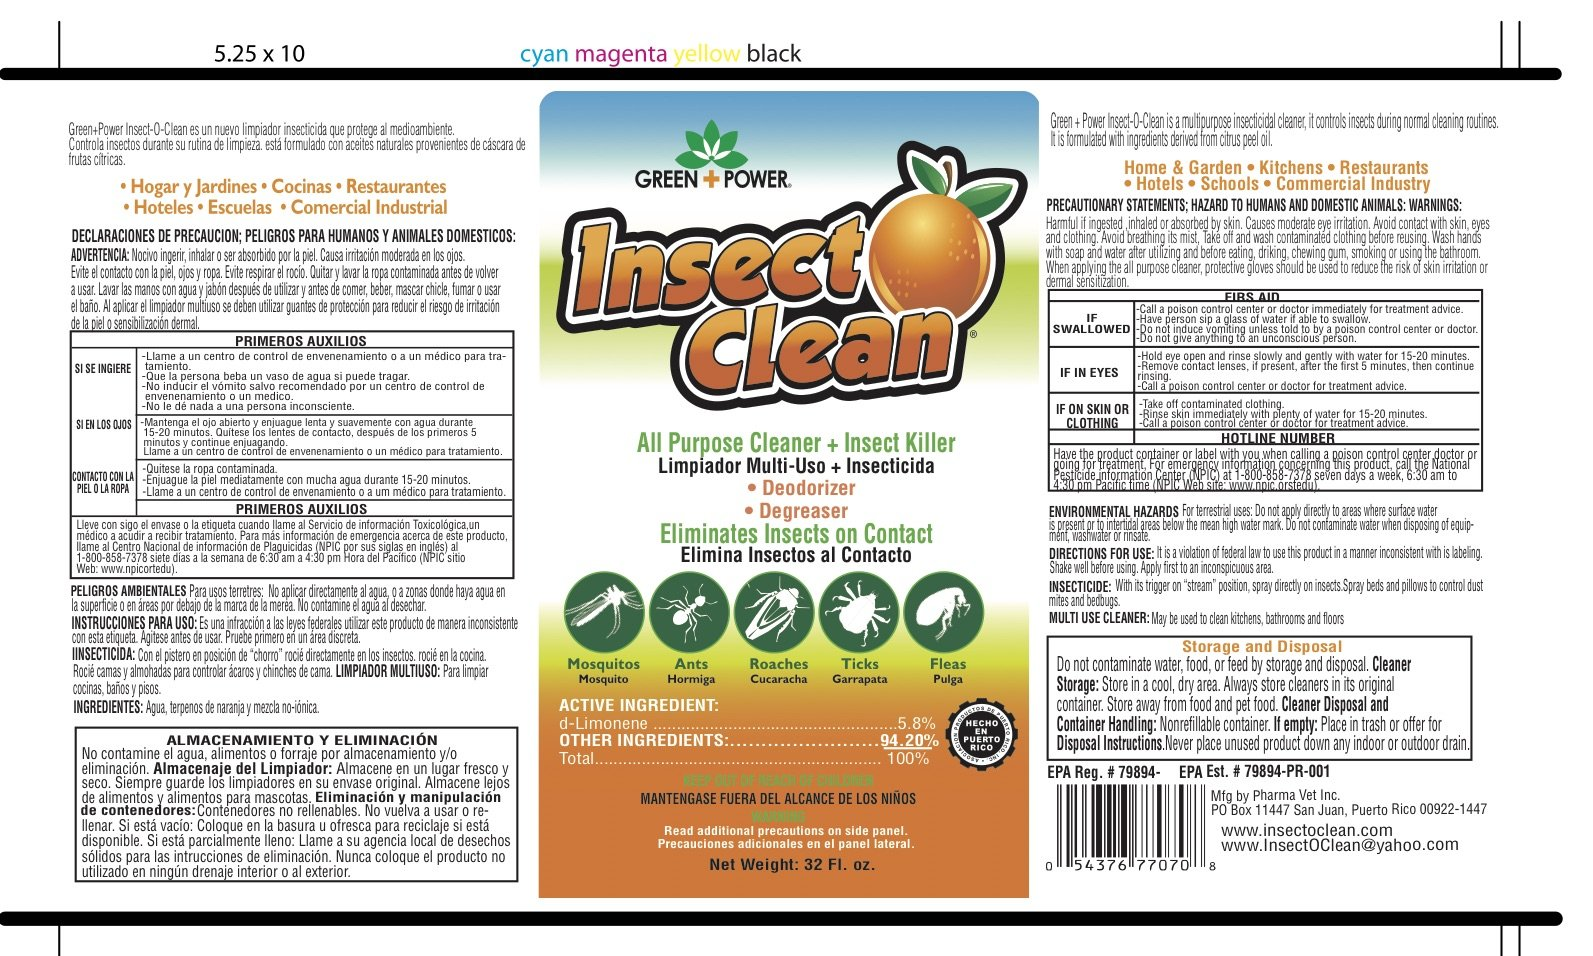 Insect-O-Clean with D-Limonene - The Natural All Purpose Cleaner + Insect Killer